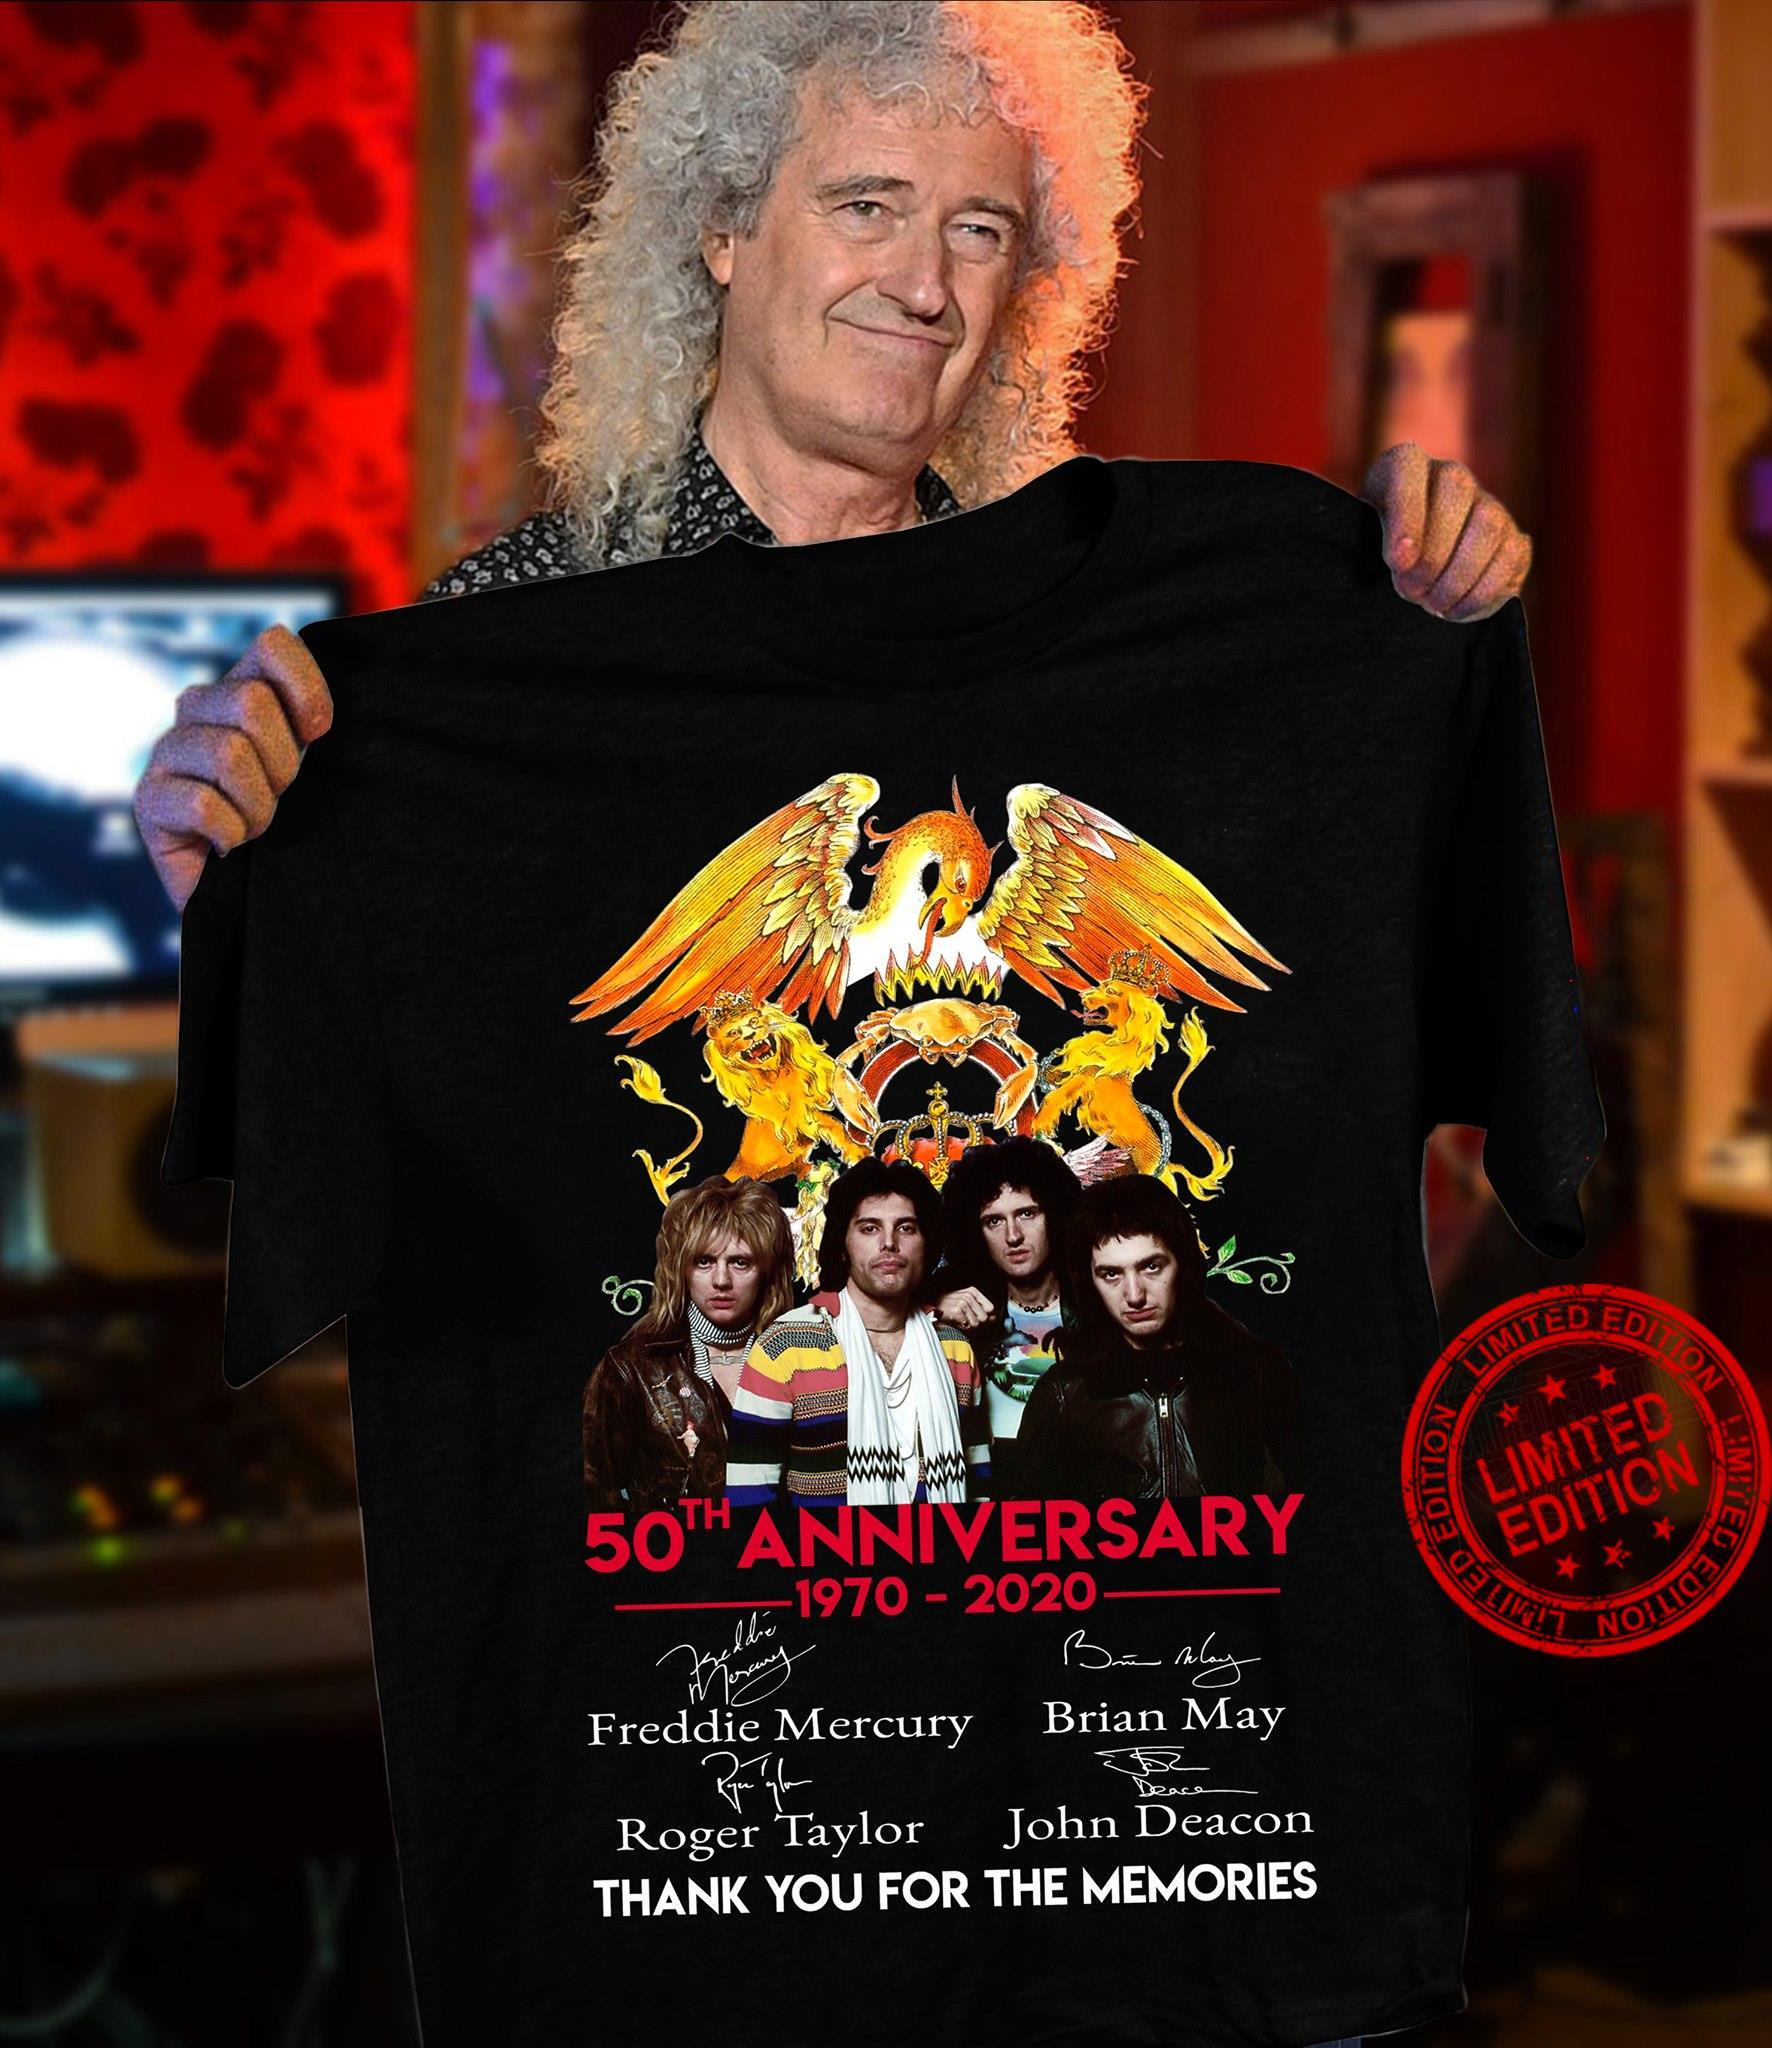 50th Anniversary 1970-2020 Freddie Mercury Brian May Roger Taylor John Deacon Thank You For The Memories Shirt